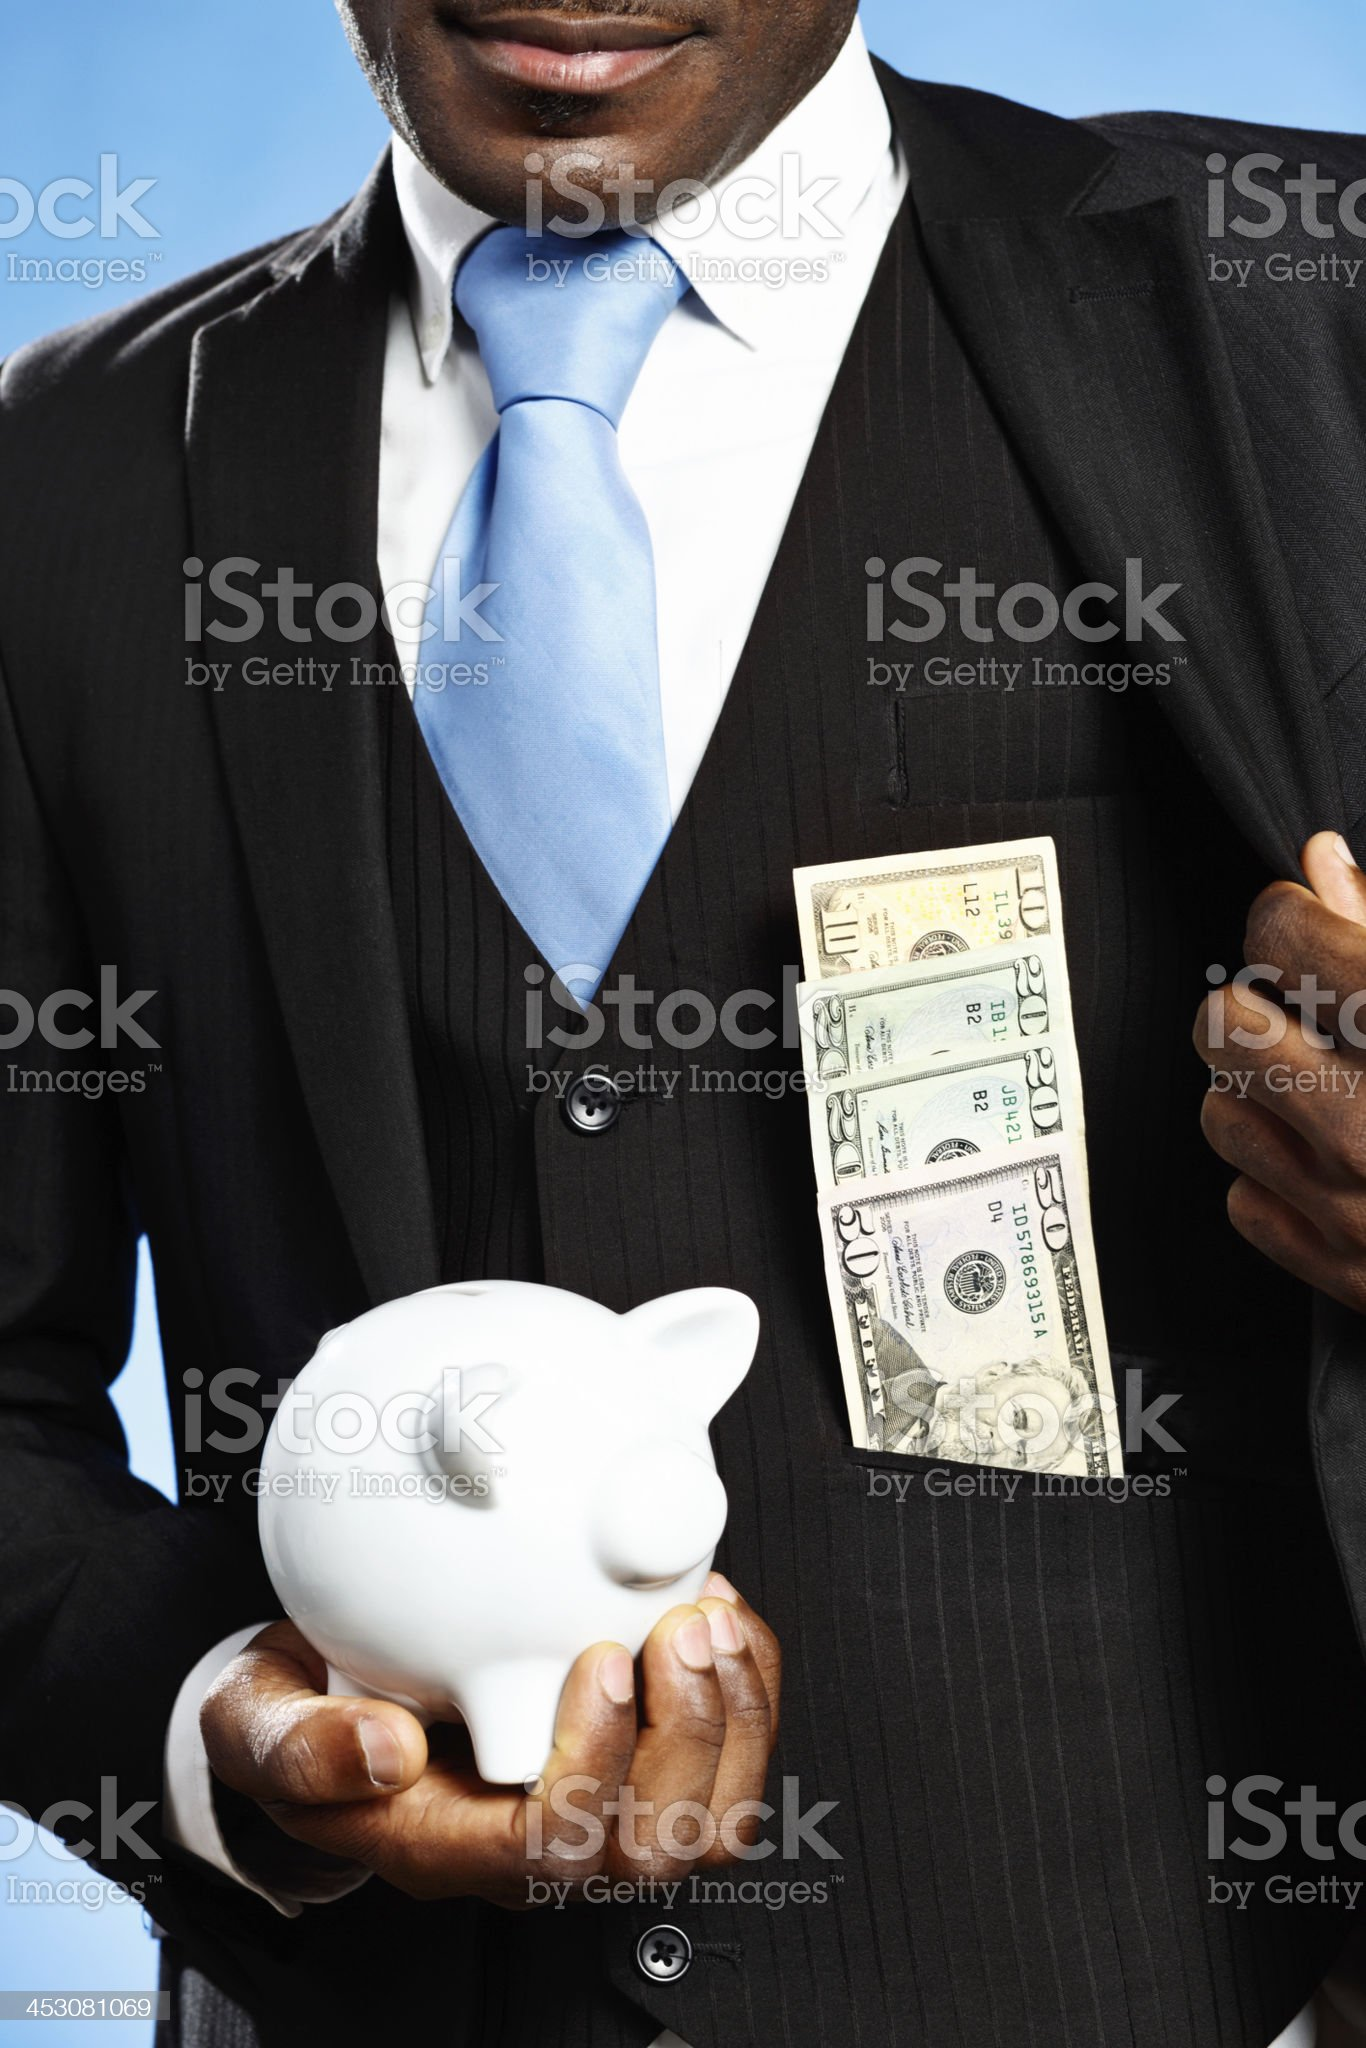 In the money! Businessman with piggybank and dollar stash royalty-free stock photo